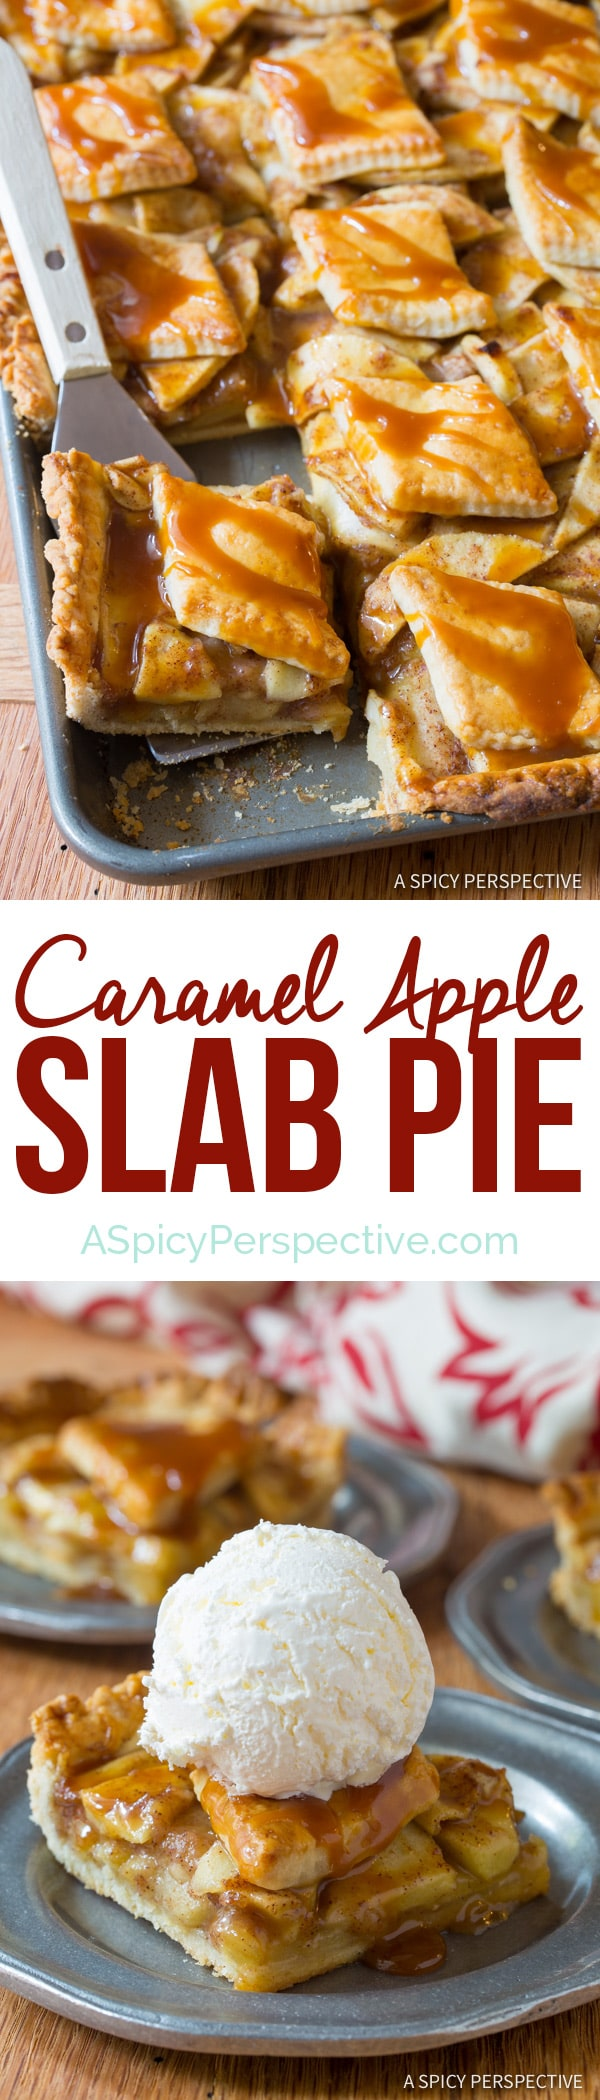 Easy-Peasy Caramel Apple Slab Pie | ASpicyPerspective.com